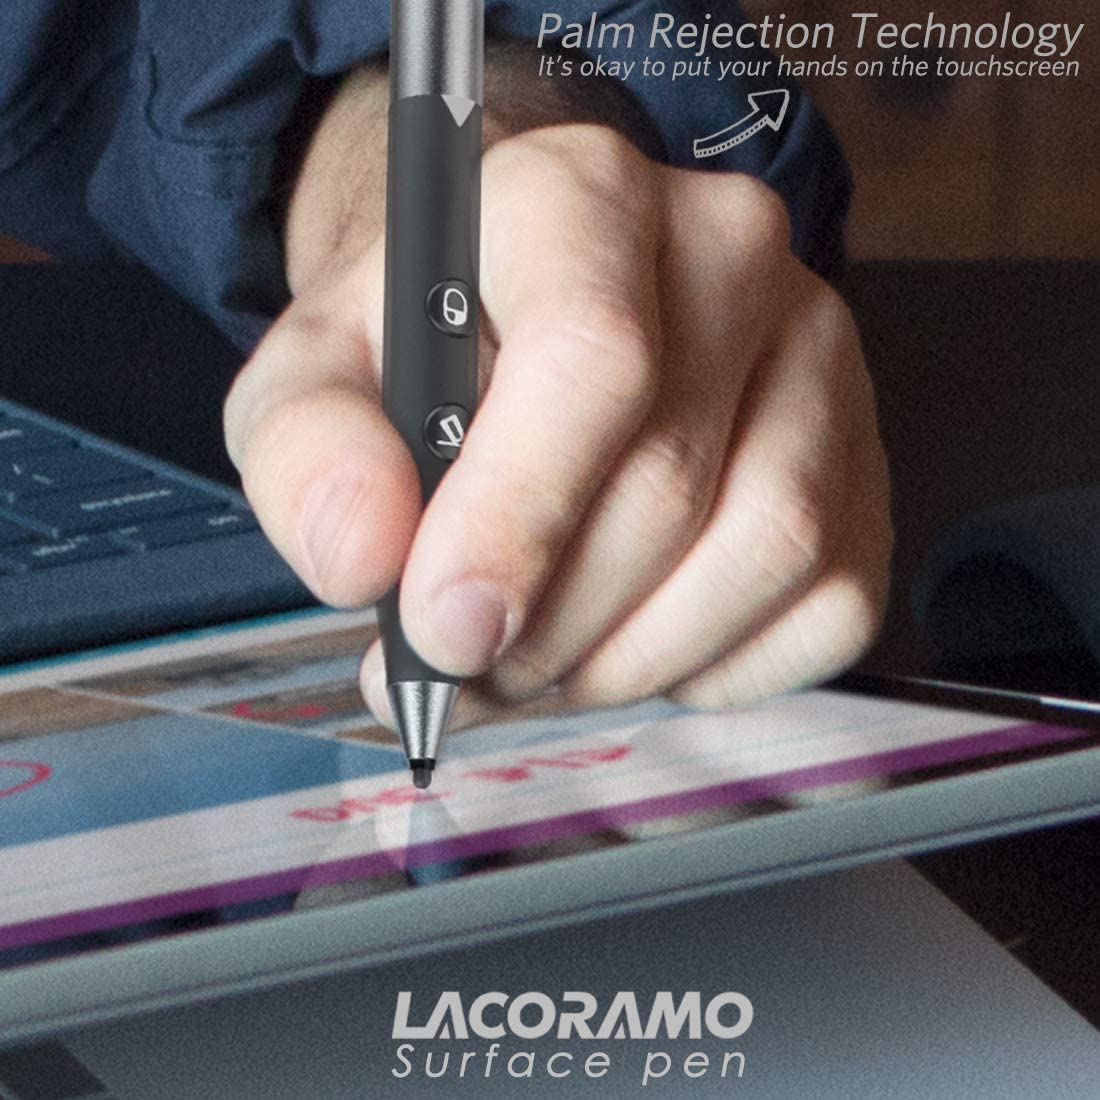 Classic 4096 Level Pressure Sensitivity Microsoft Certificated Surface Pen USB Rechargeable Surface Stylus for Surface Pro 7 6 5 4 3 Pro X 2019 Surface Book//Go//Studio 500 Hours Continuous Use